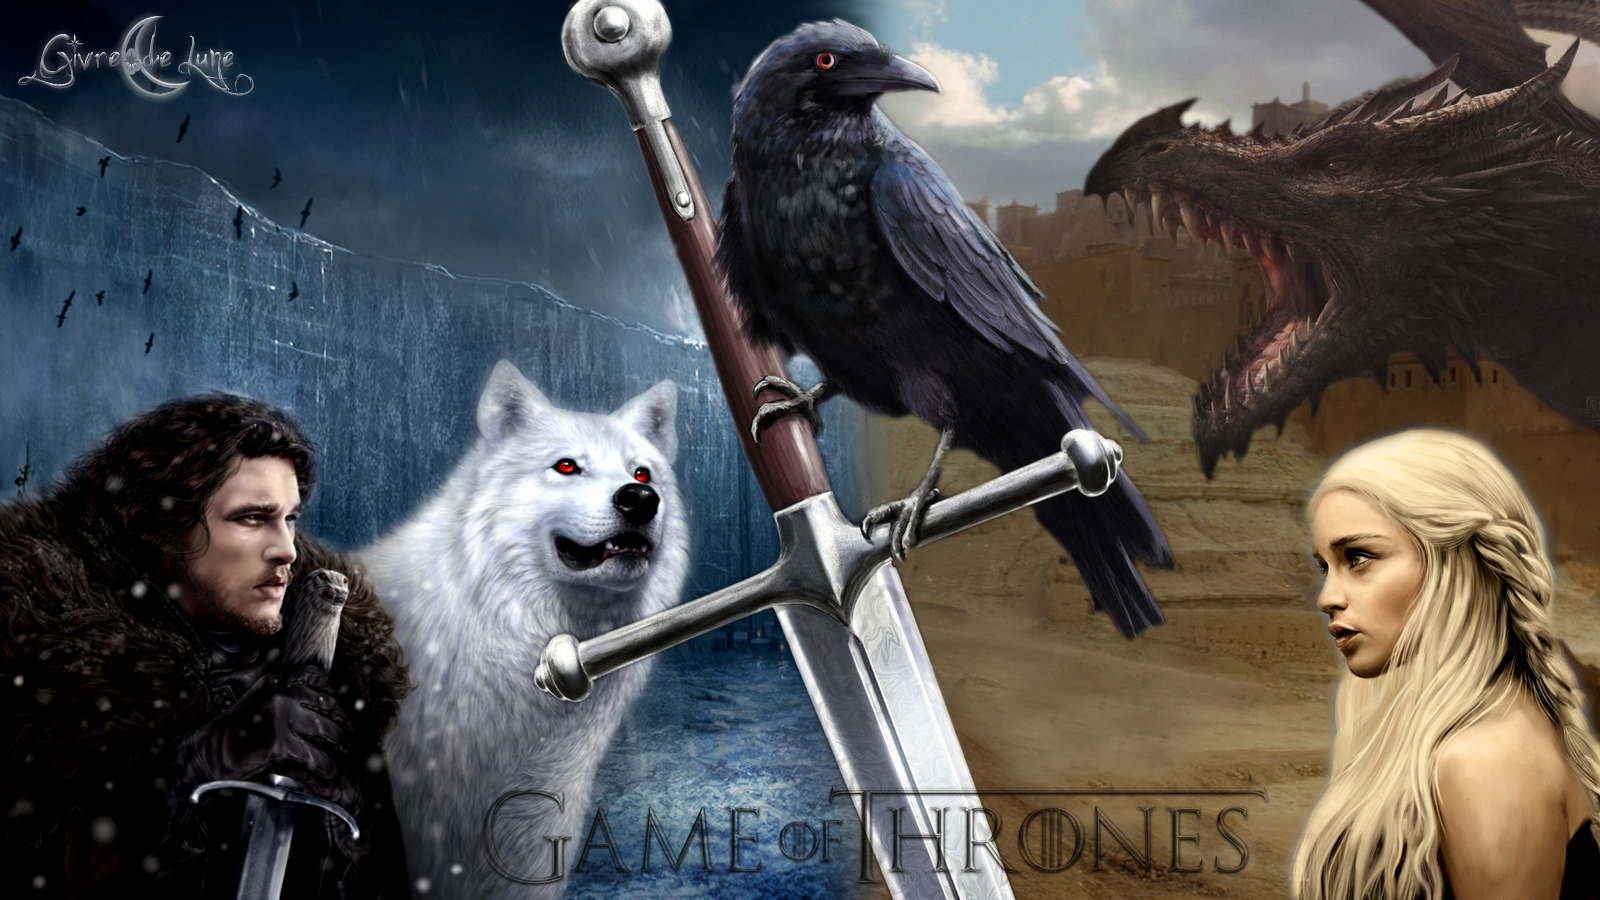 https://static.blog4ever.com/2008/08/236566/banni--re-game-of-thrones.png